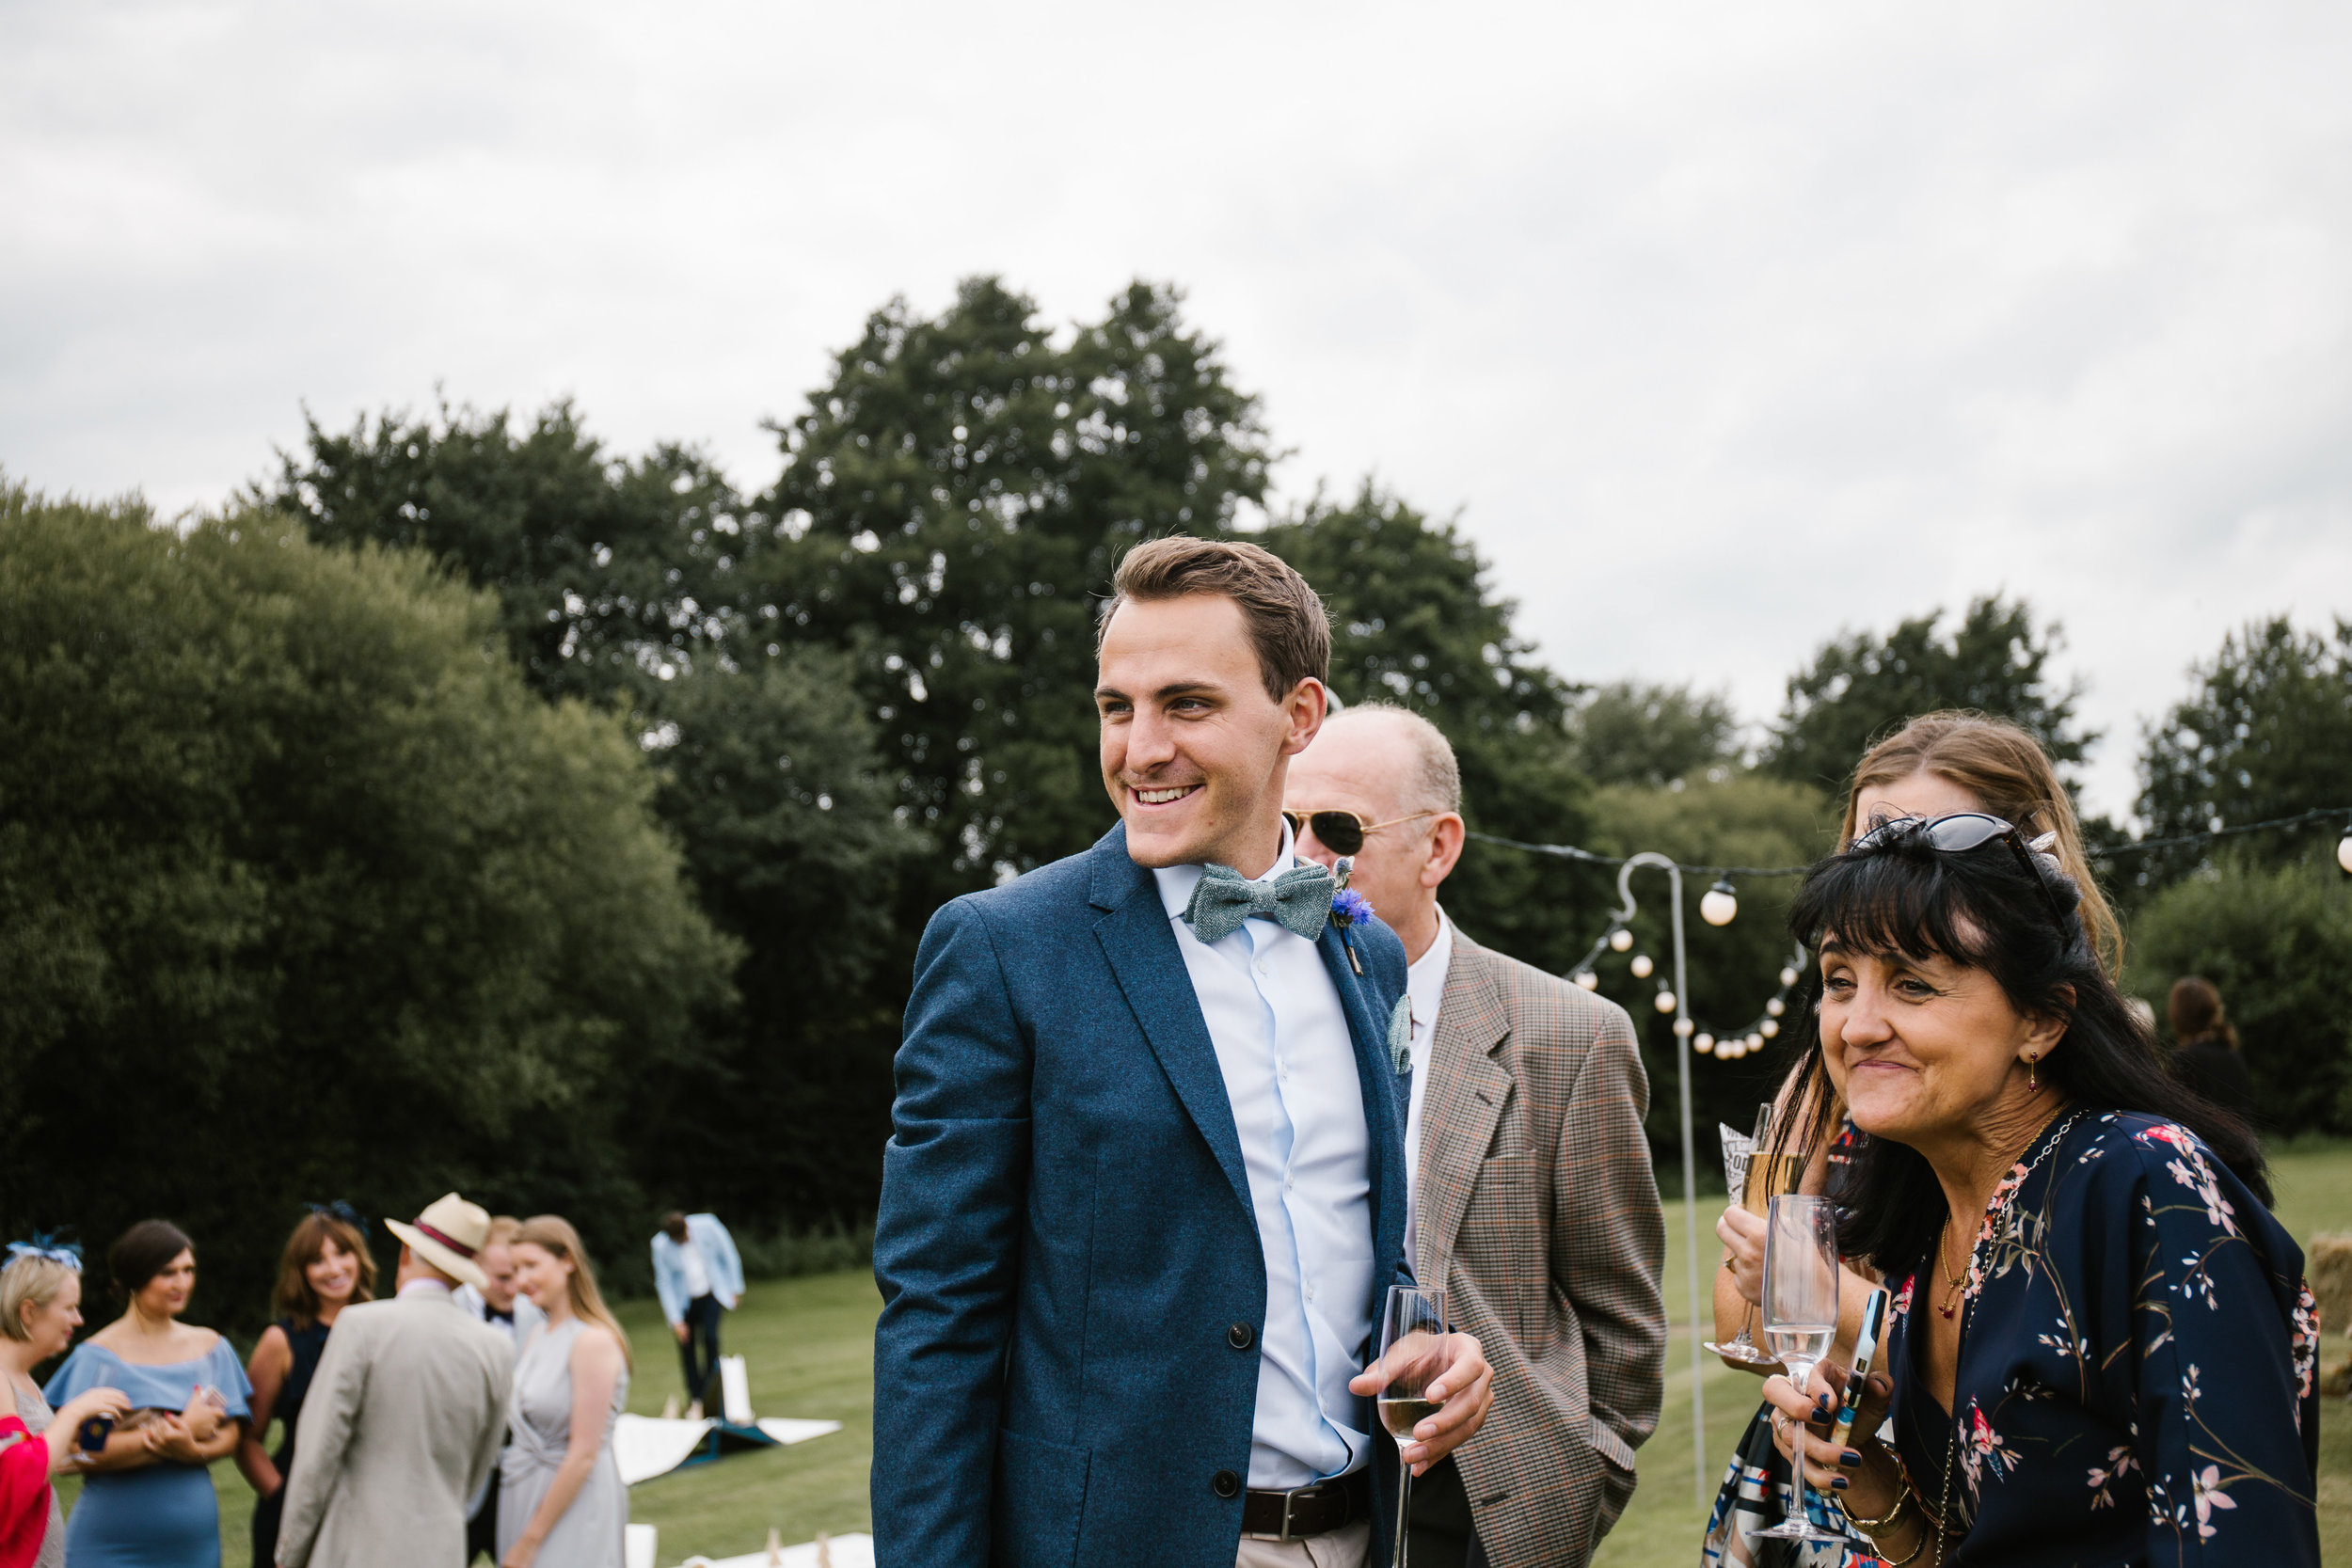 Tipi wedding, teepee wedding, tipi wedding photographer somerset wedding, somerset wedding photographer, cotswolds wedding photographer, DIY wedding, fun wedding, birmingham wedding photographer -350.jpg